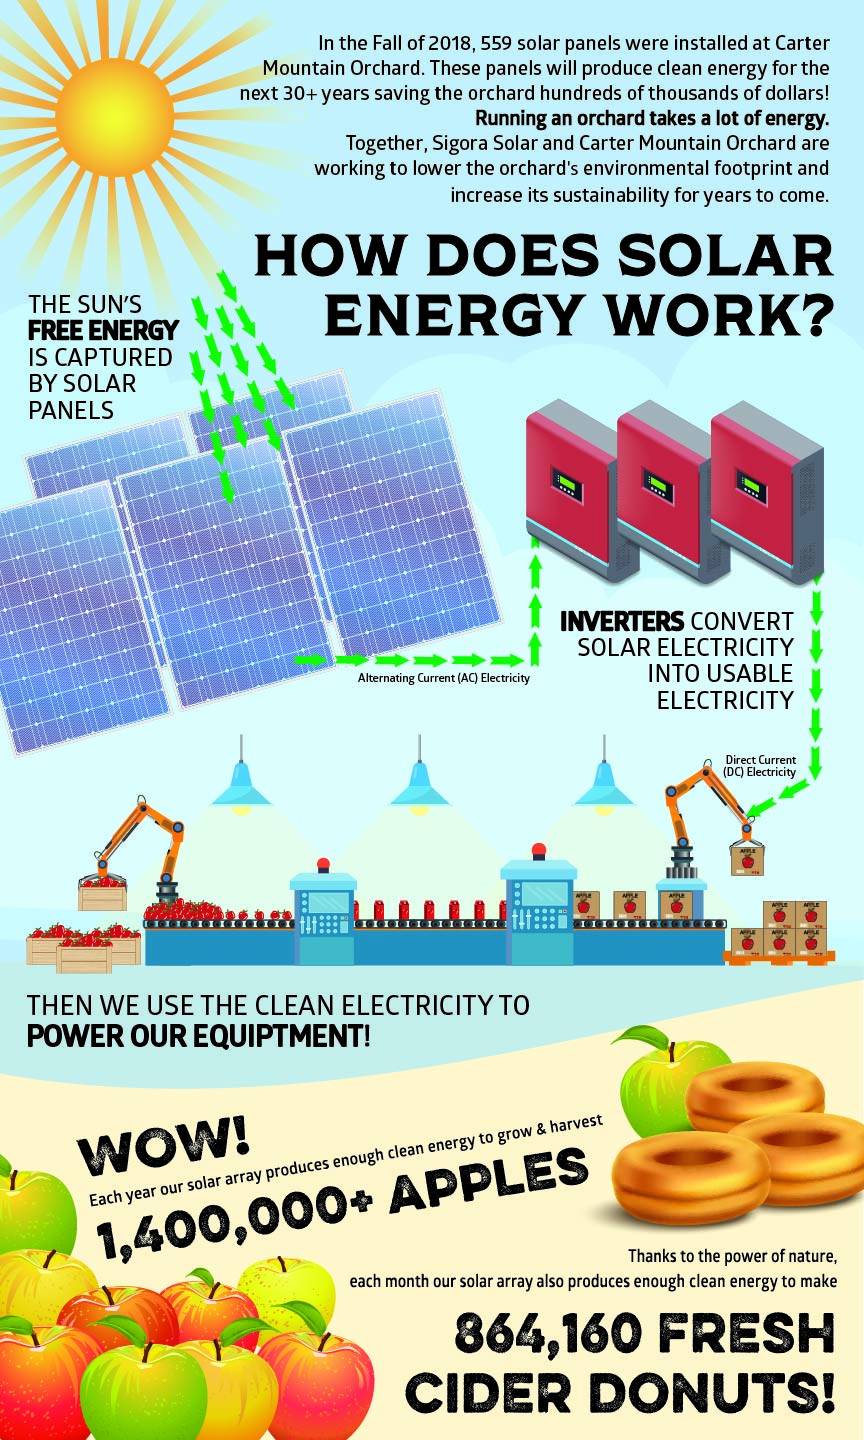 How-Does-Solar-Energy-Work-Graphic.jpg